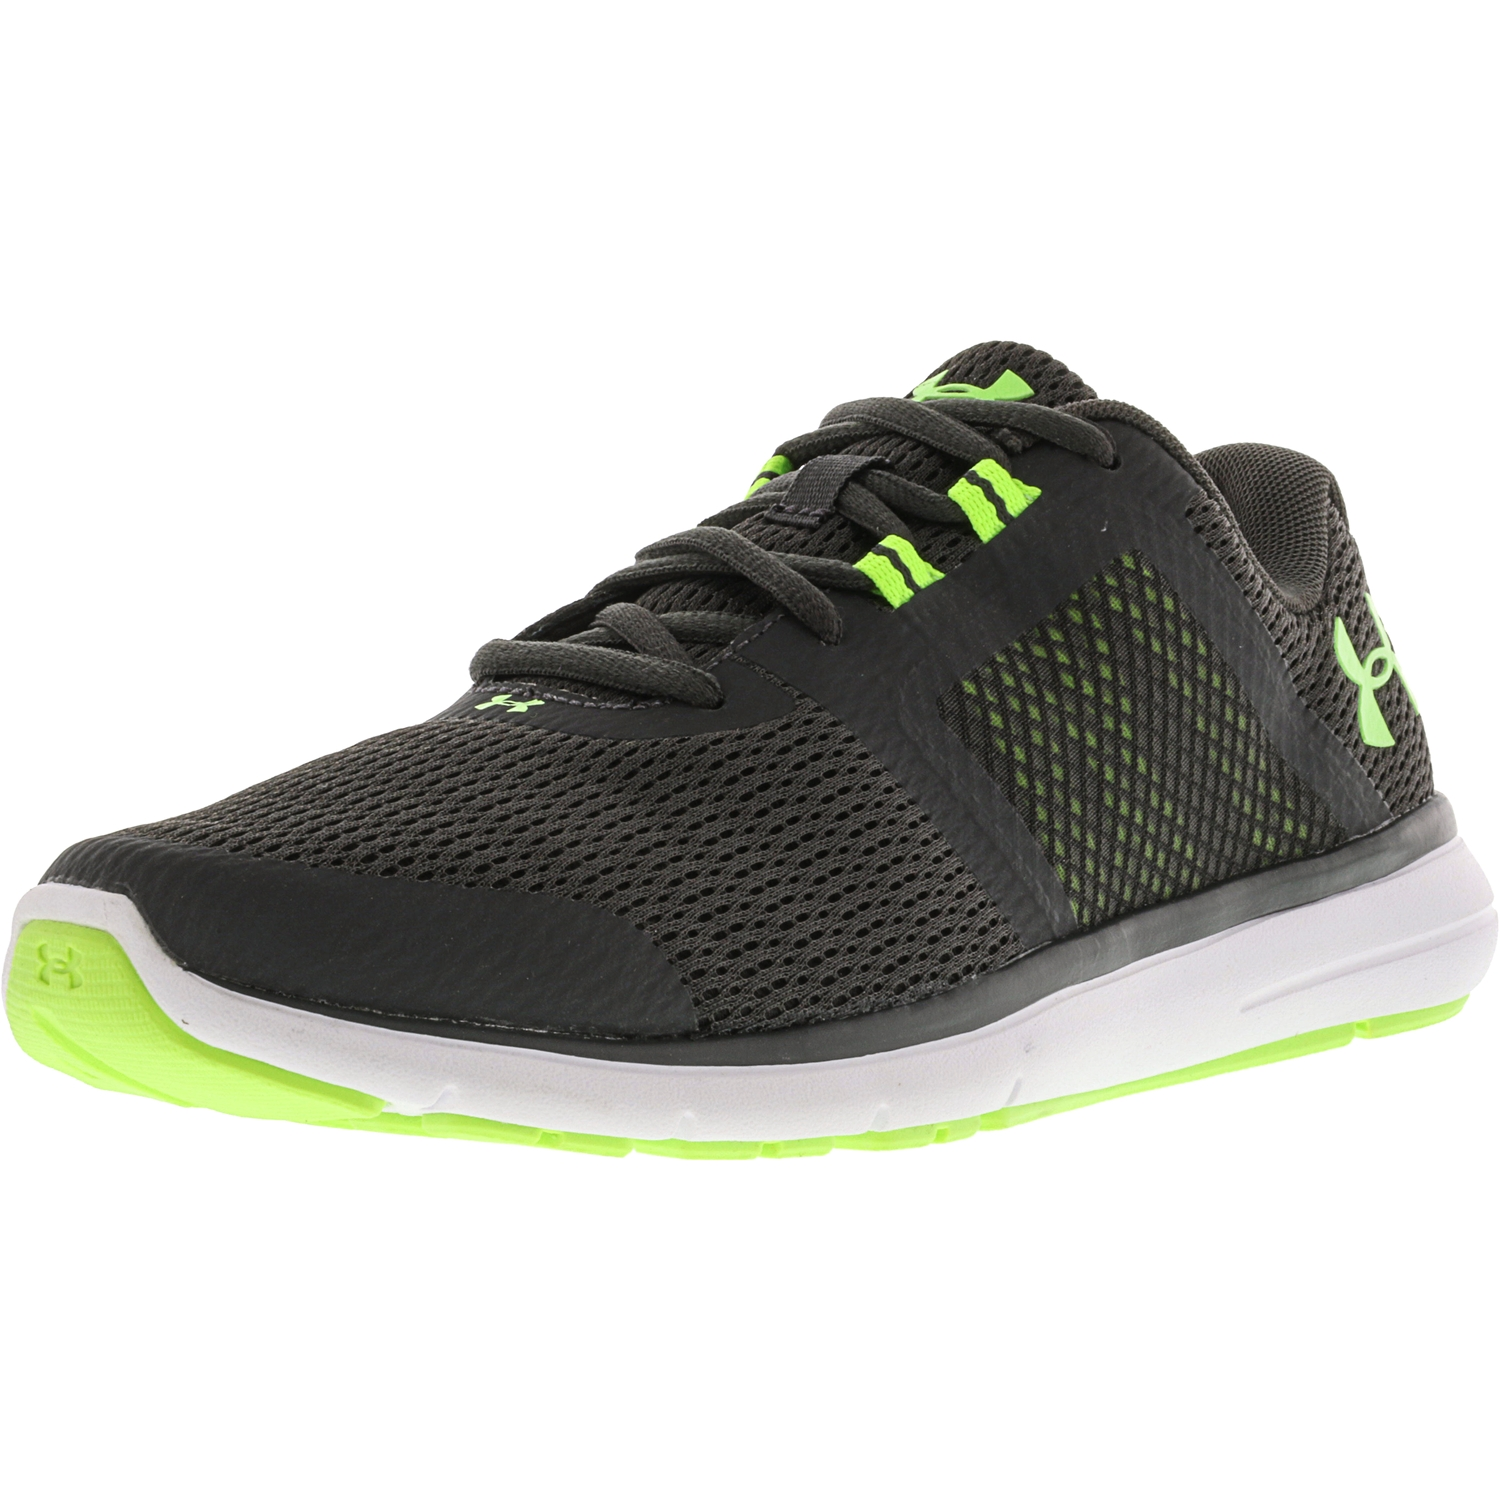 Under Armour Men's Fuse Fst Charcoal / White Quirky Lime Ankle-High Running Shoe - 7M